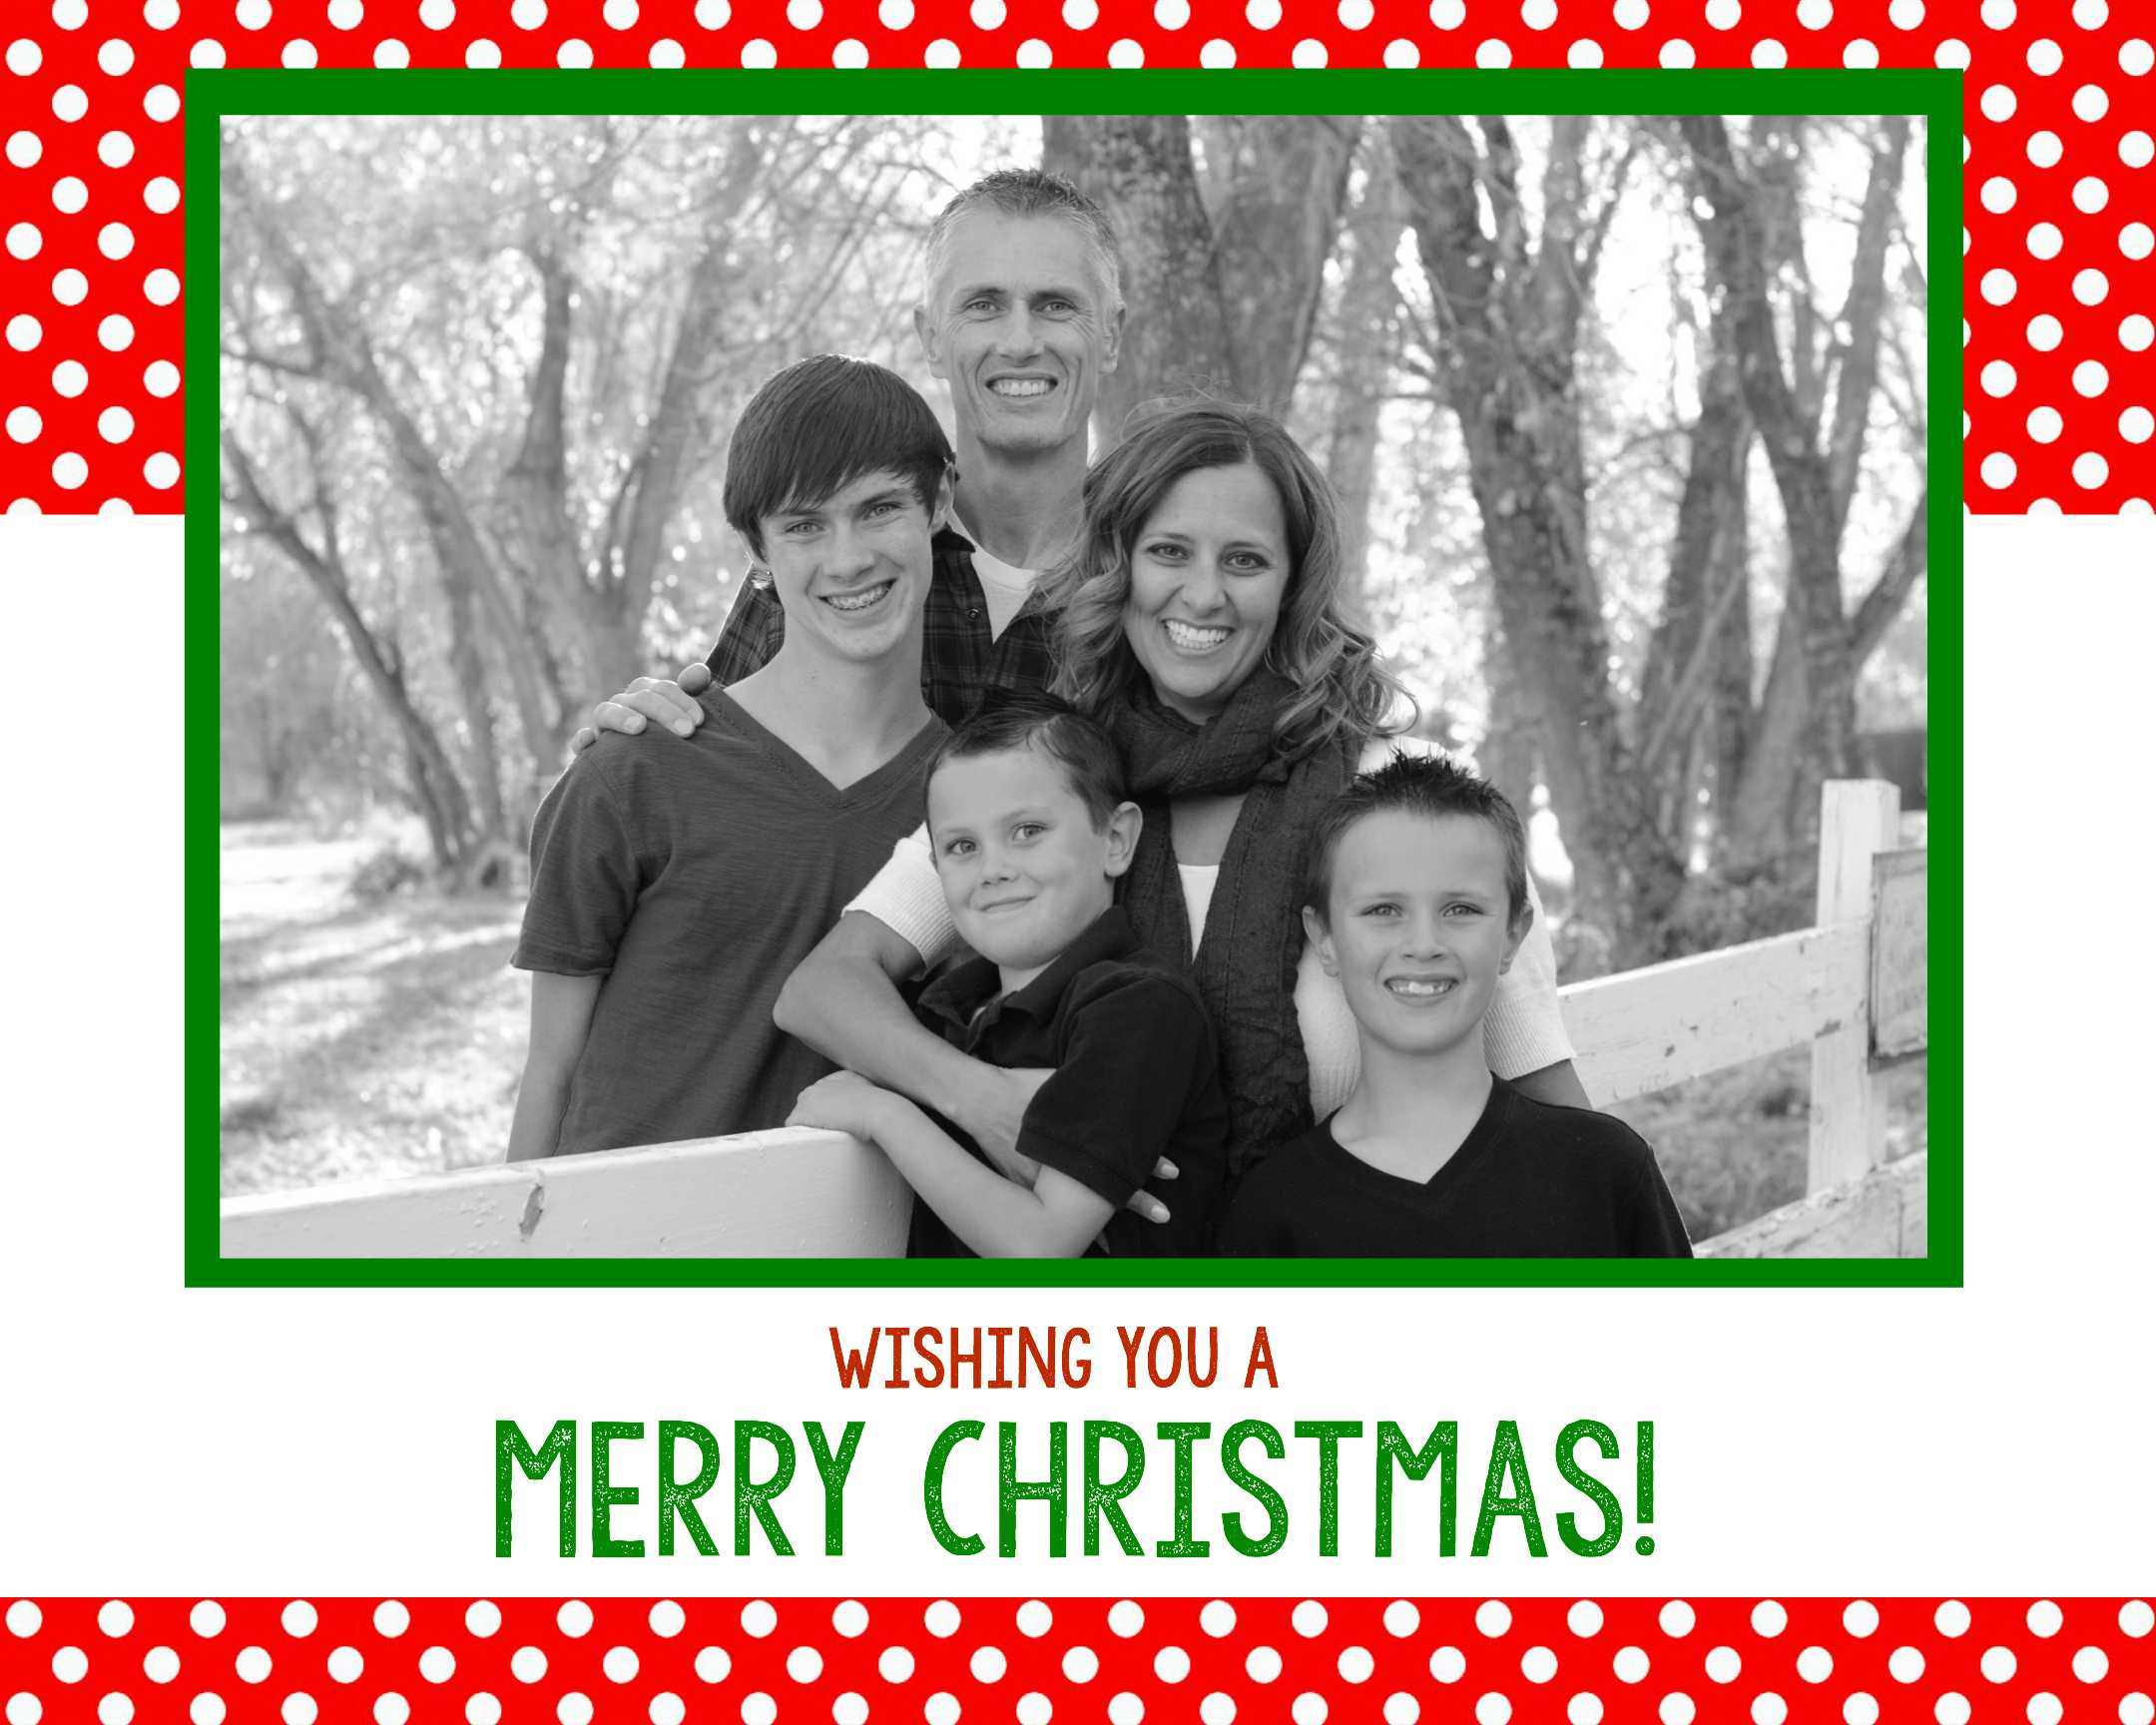 Photo Christmas Card Templates - Zohre.horizonconsulting.co Inside Free Christmas Card Templates For Photographers